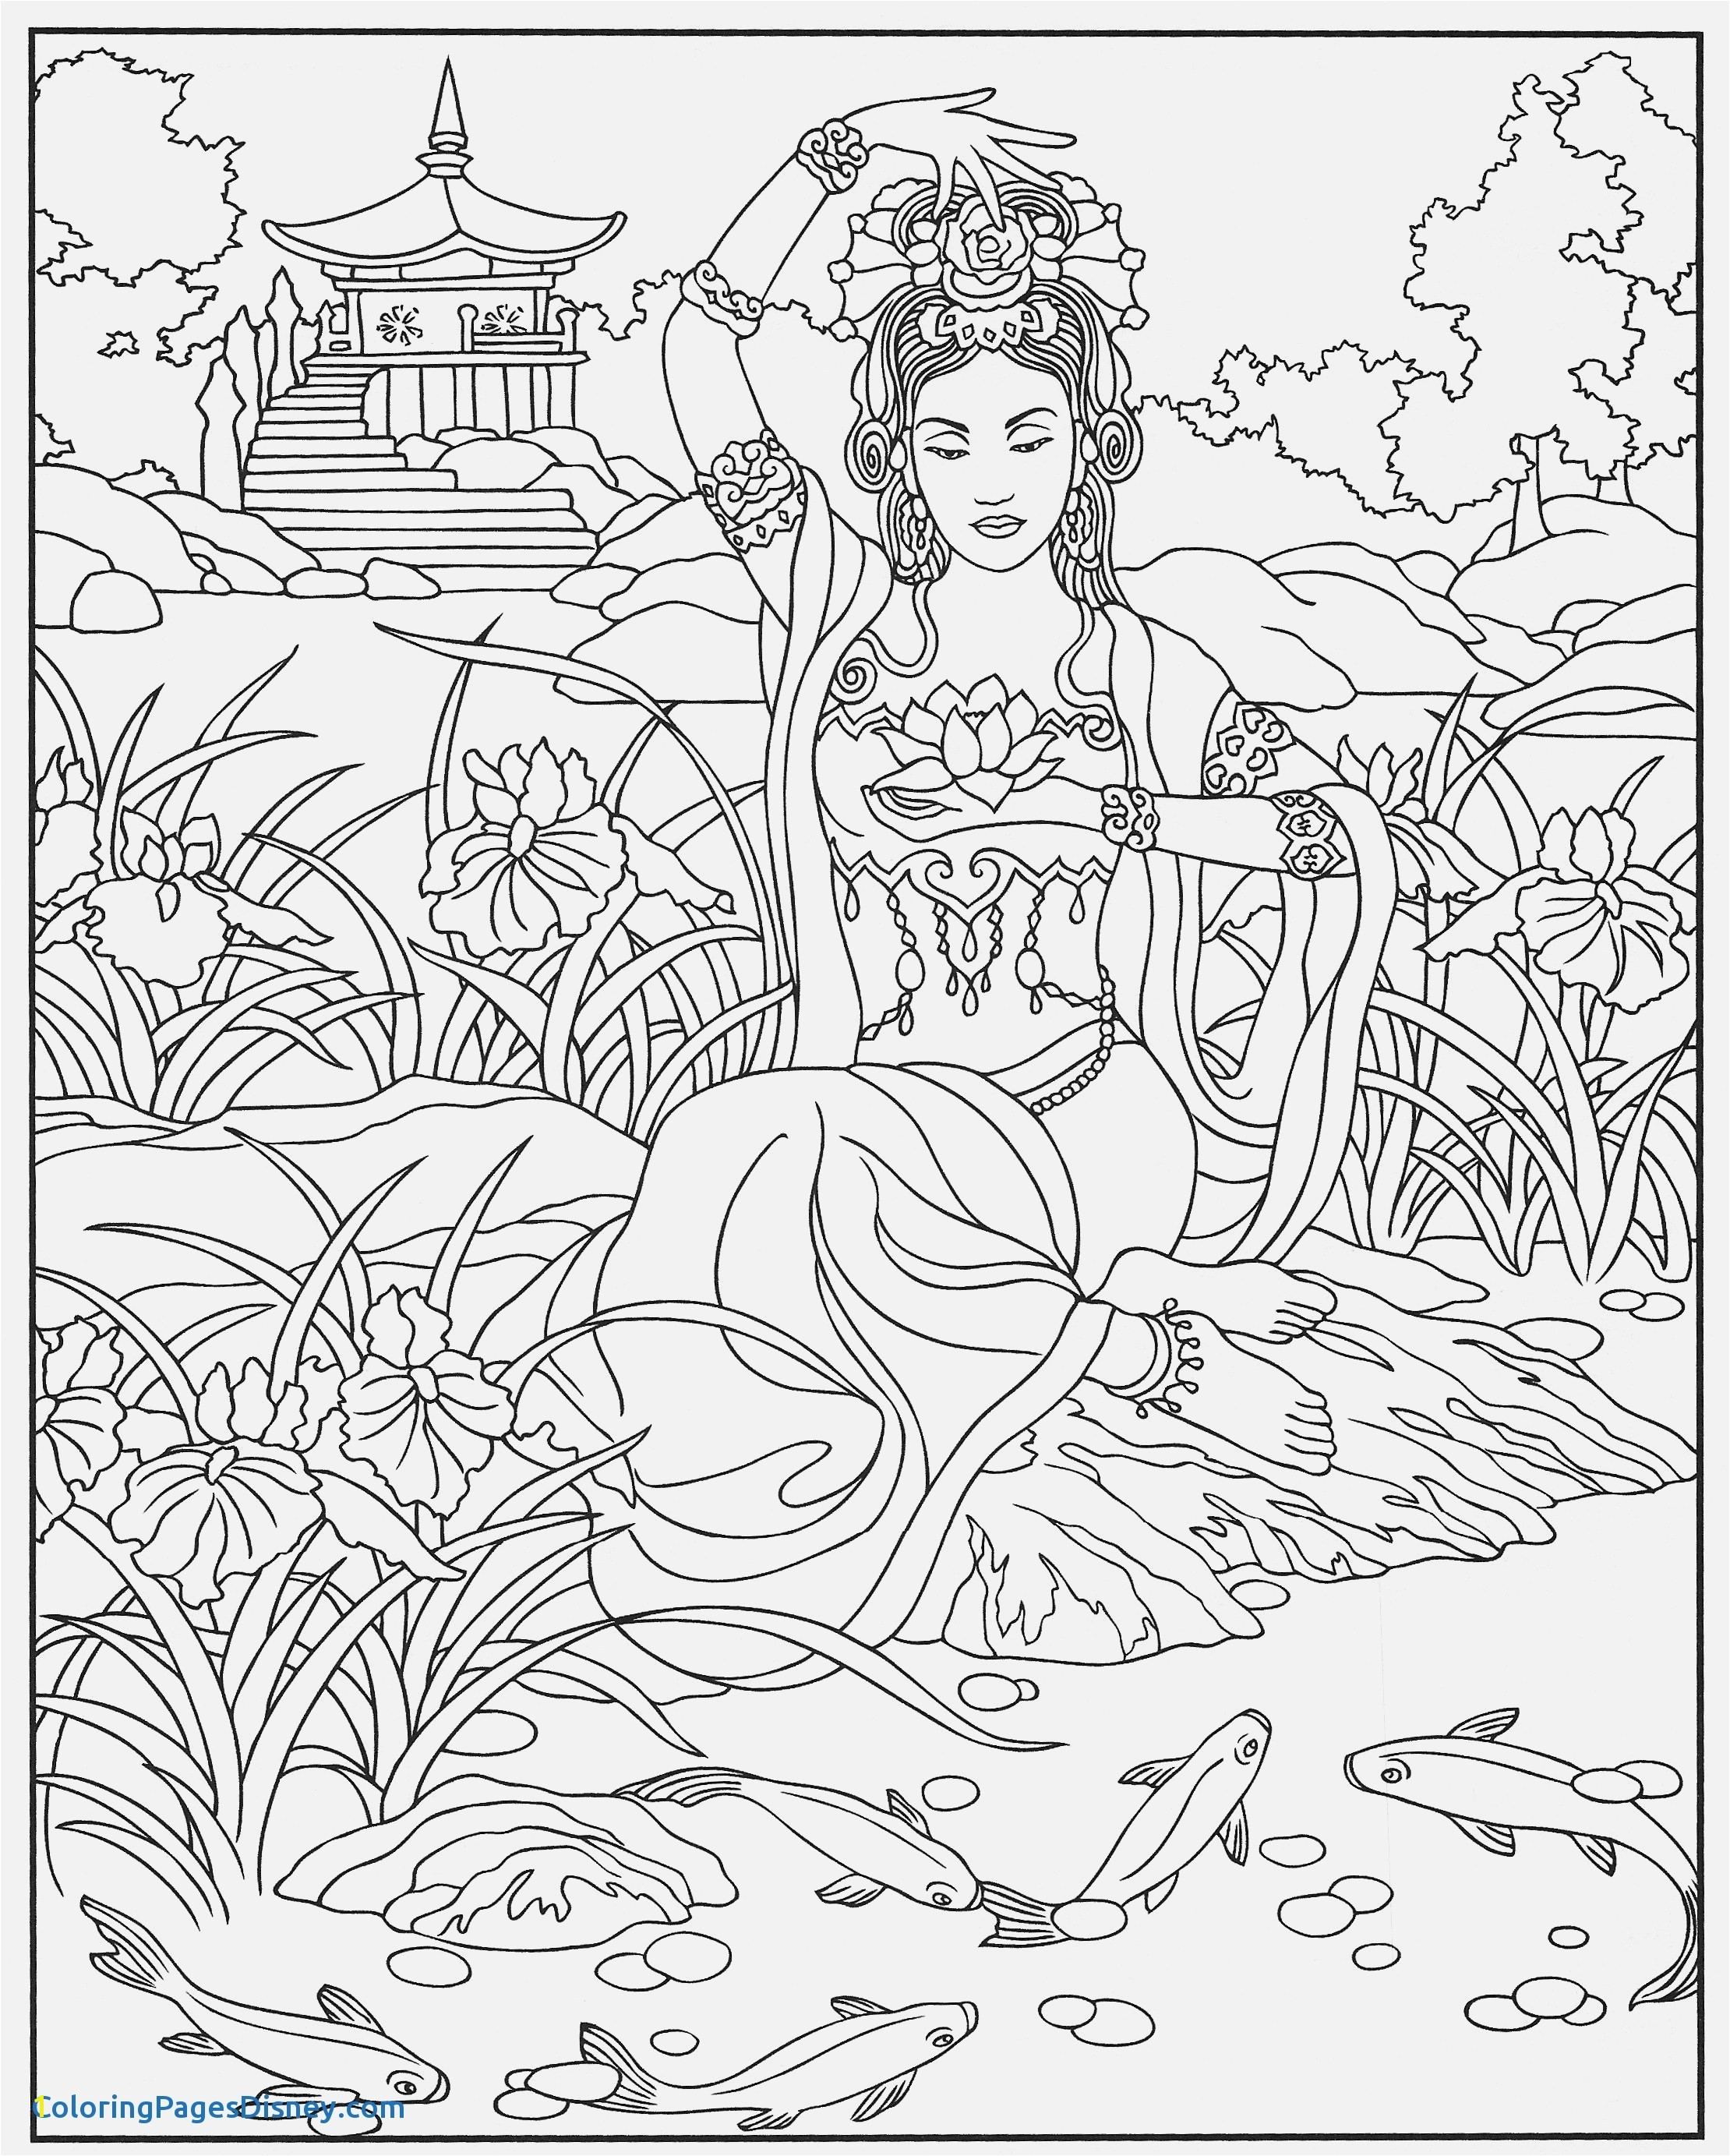 link coloring pages 9y link coloring games unique cool coloring page unique witch coloring pages new crayola pages 0d